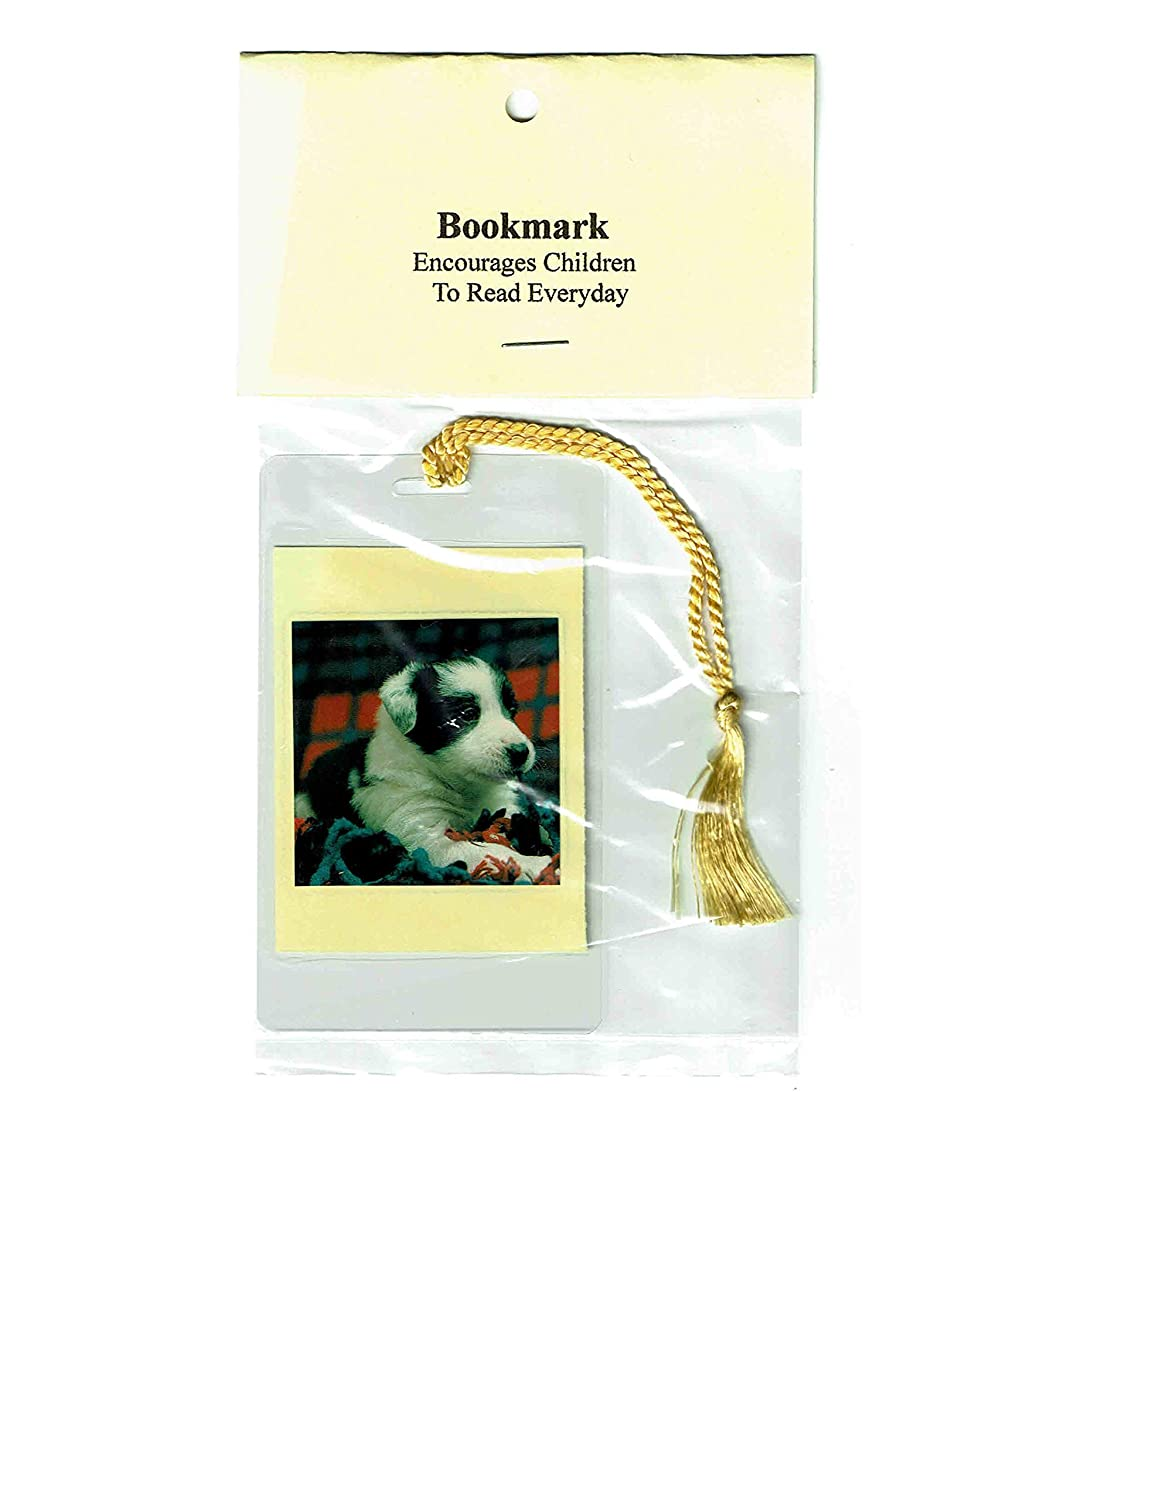 Have You Virginia Beach Mall Excellent Read To Your Mutt Dog Bookmark Today? and Card Greeting